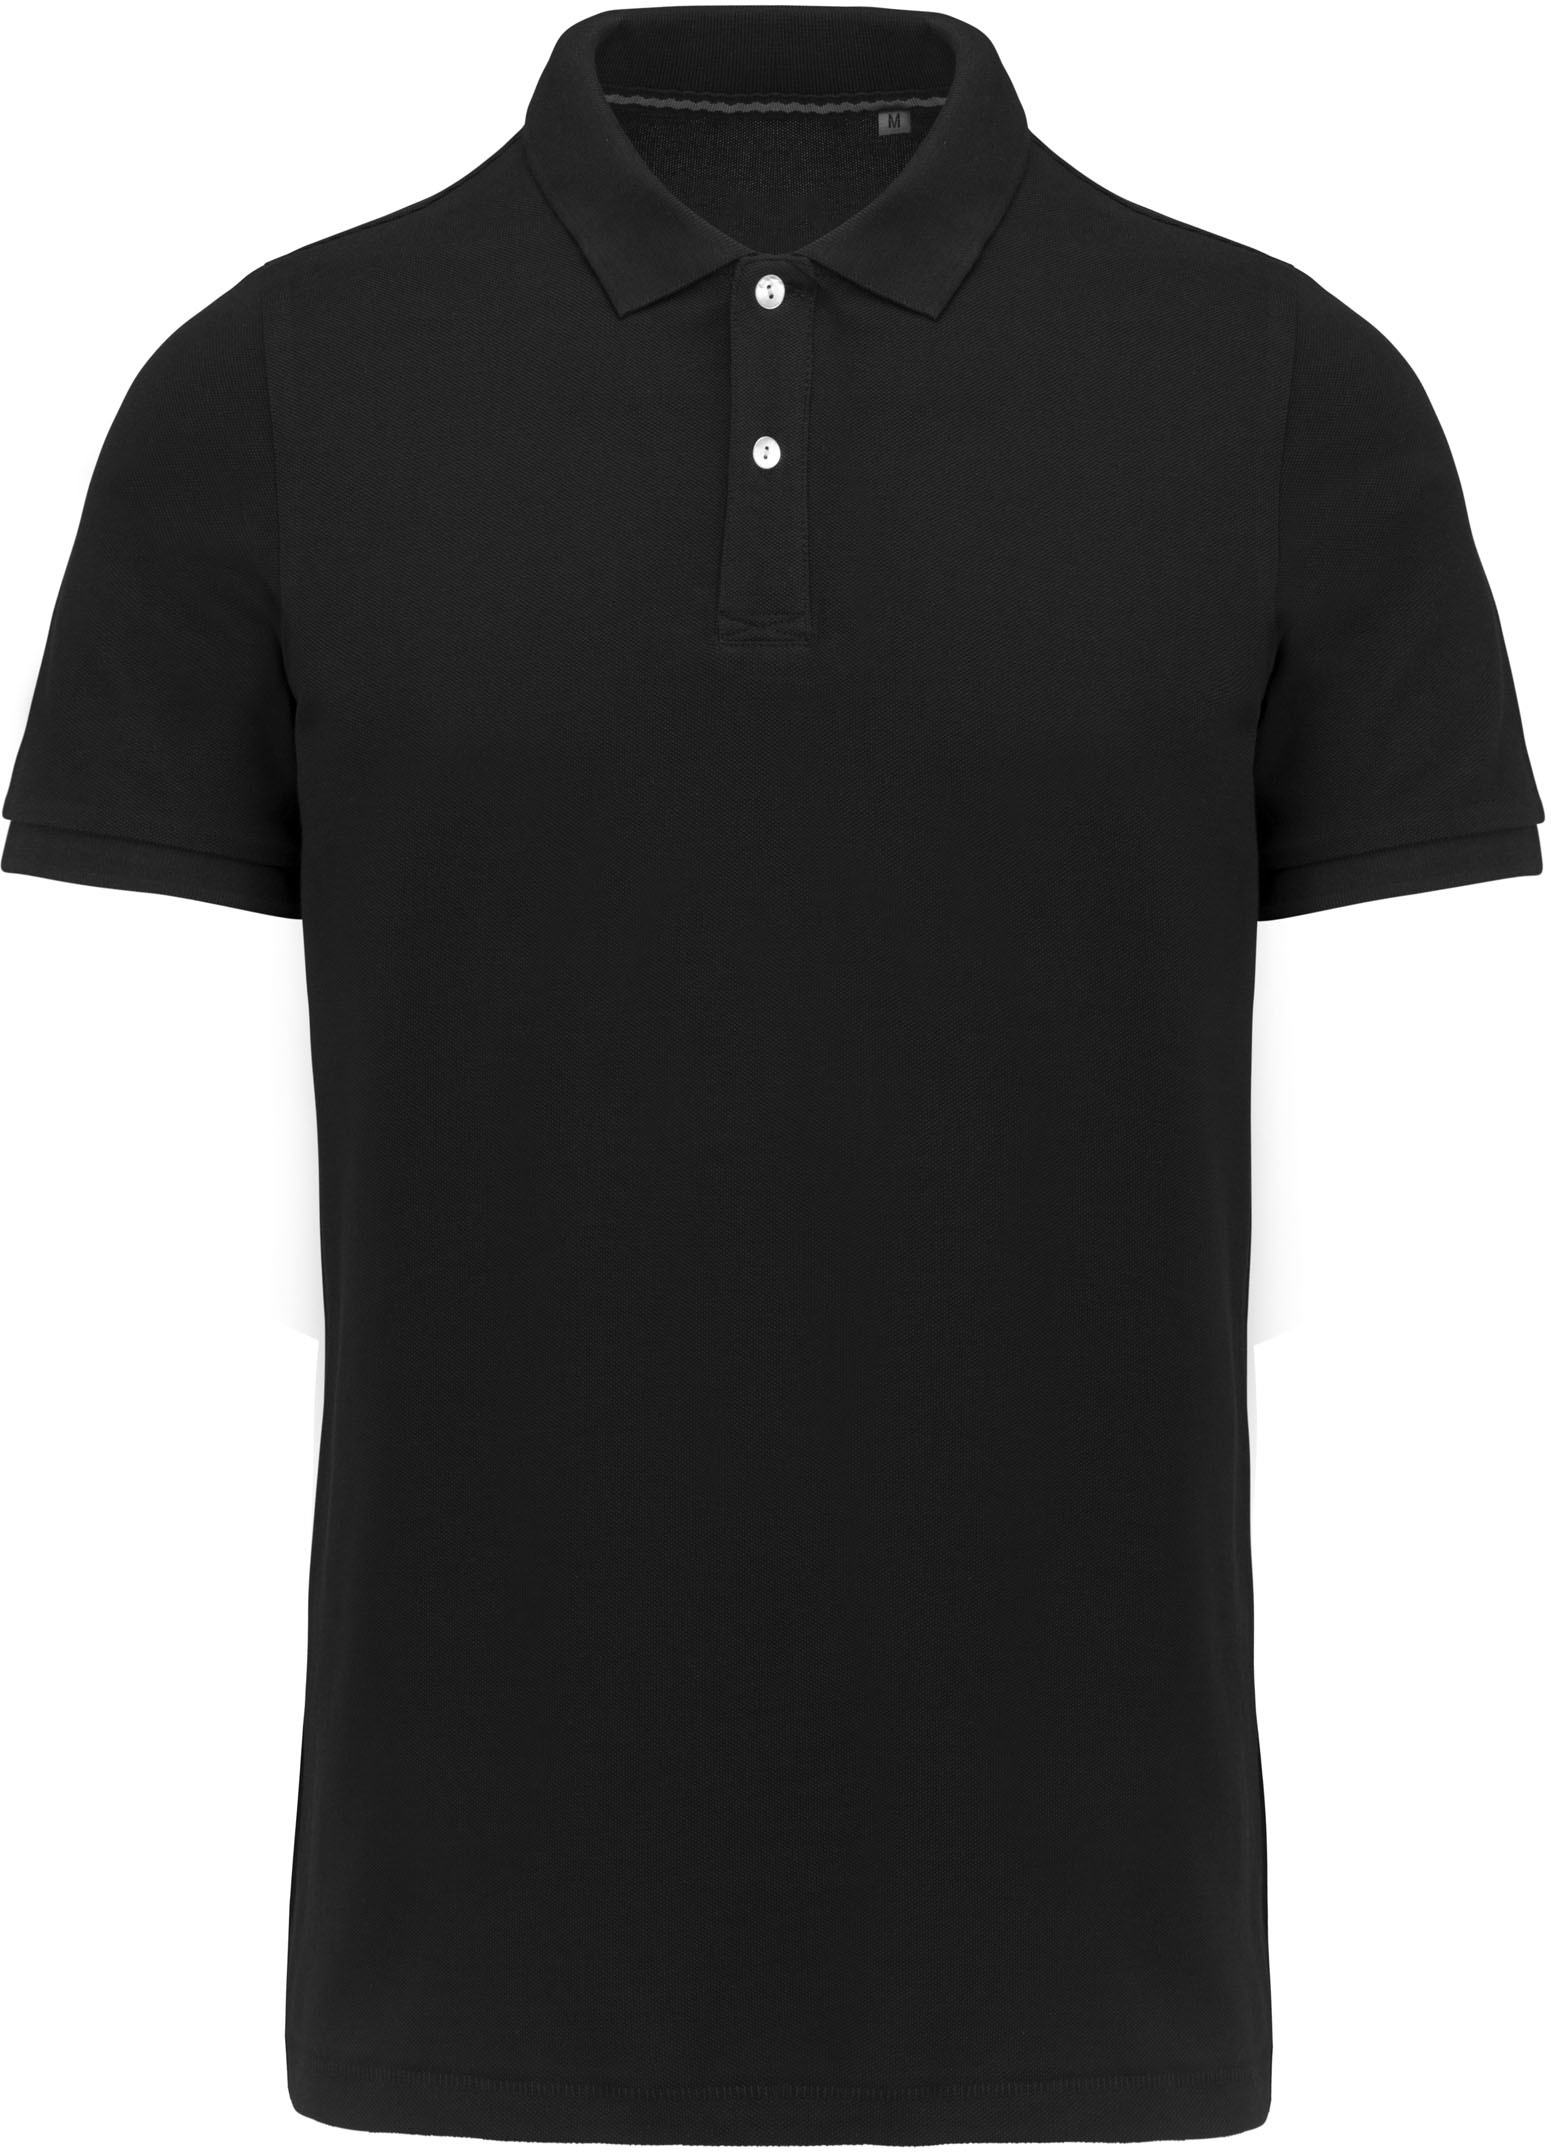 Polo Supima® manches courtes homme - 2-1539-1